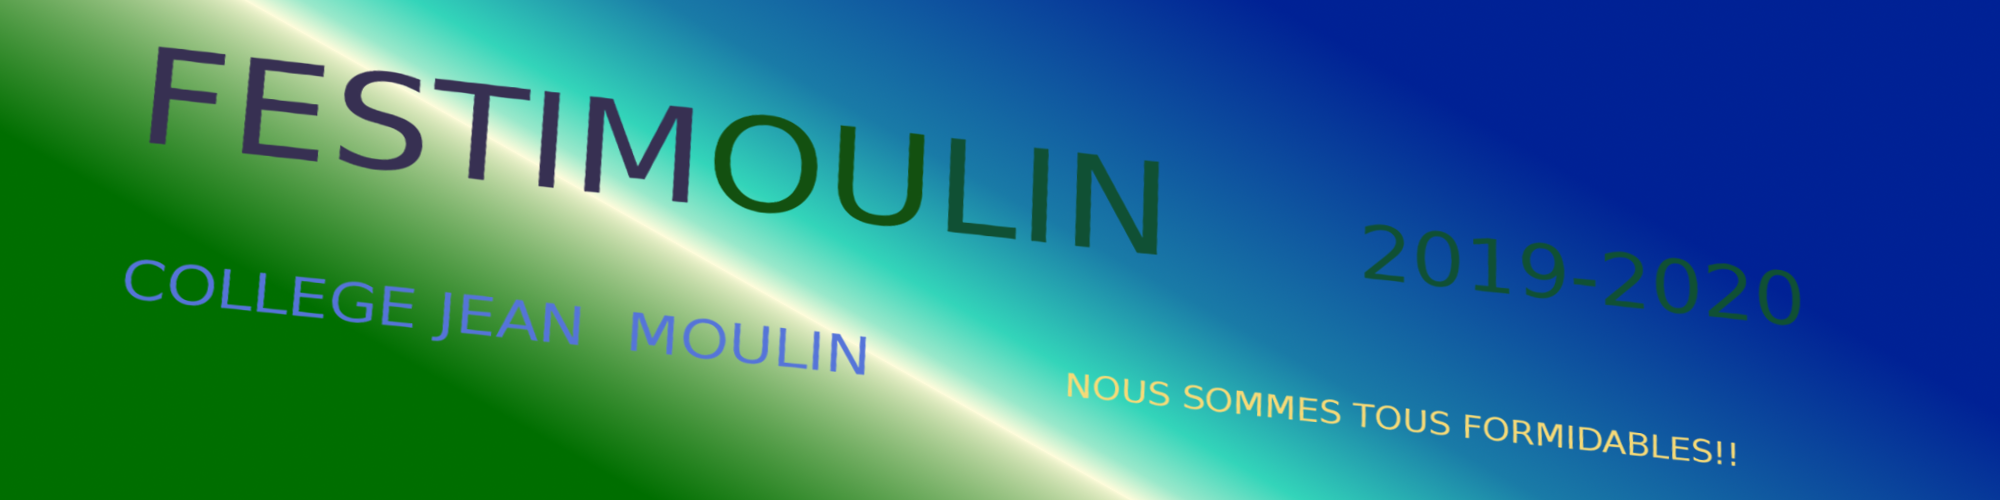 Marque page festimoulin 2019achra et mohamed304.png